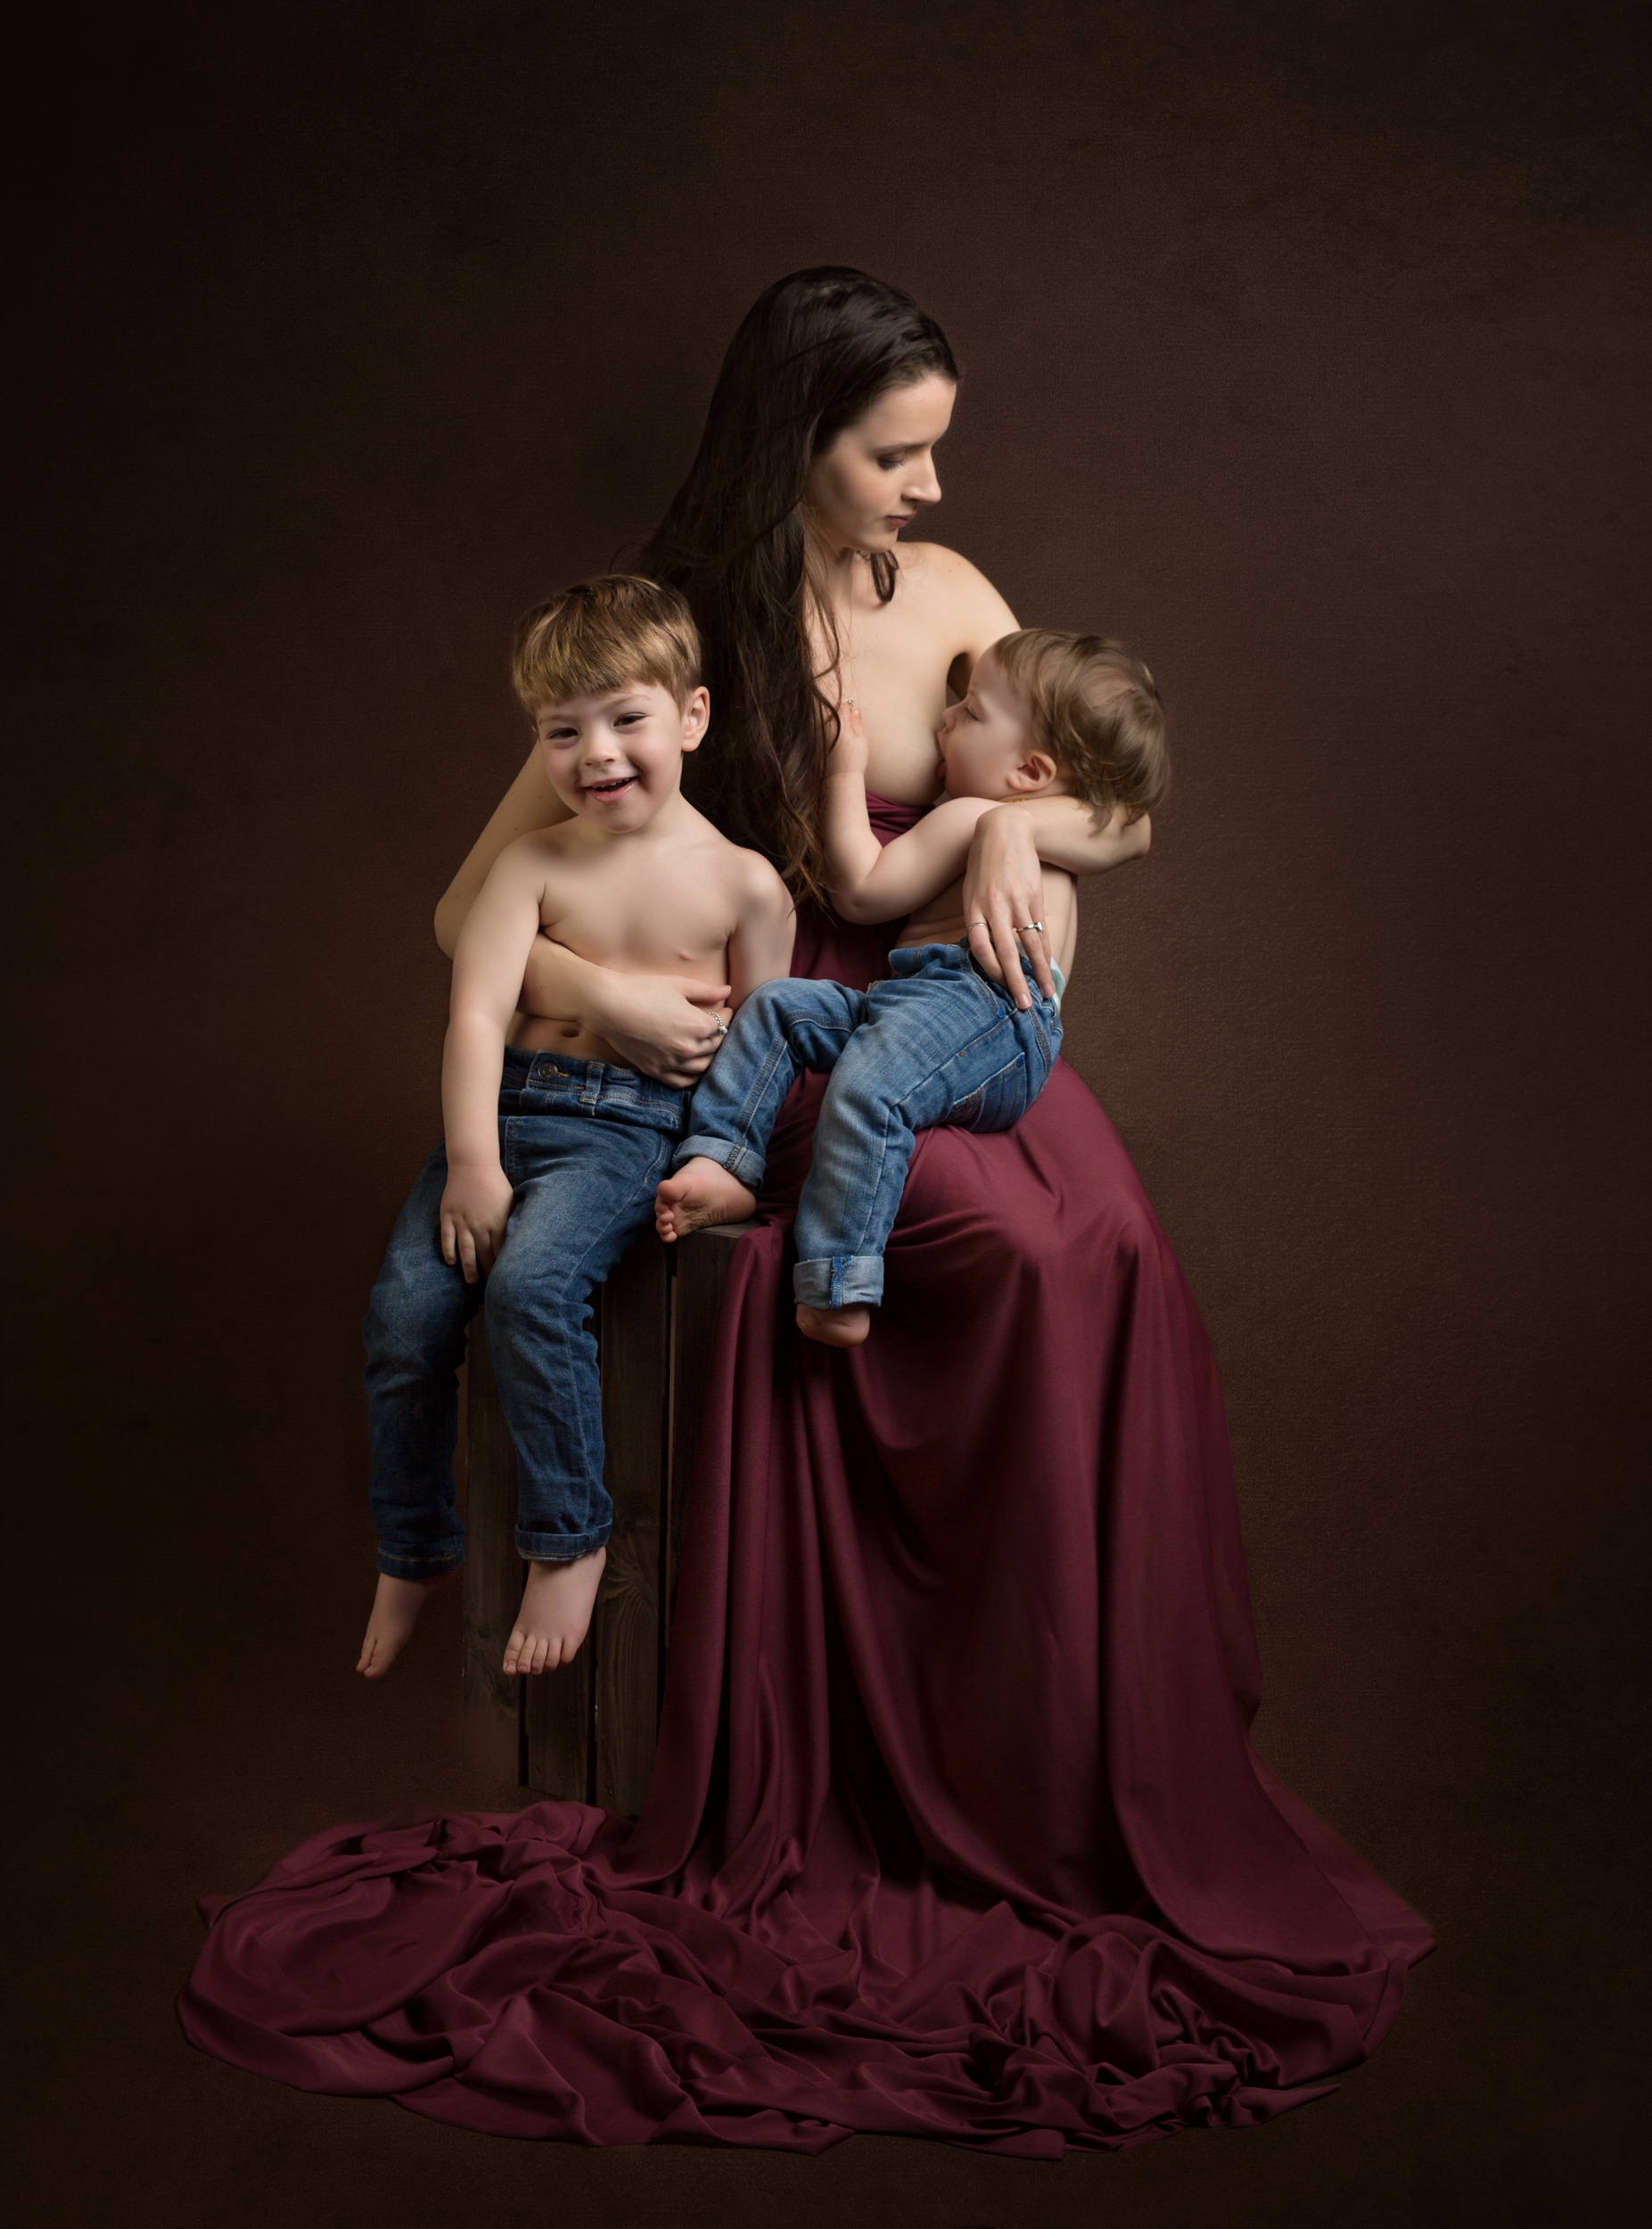 Subtle breastfeeding image with stunning gown and two boys in jeans in Cheshire